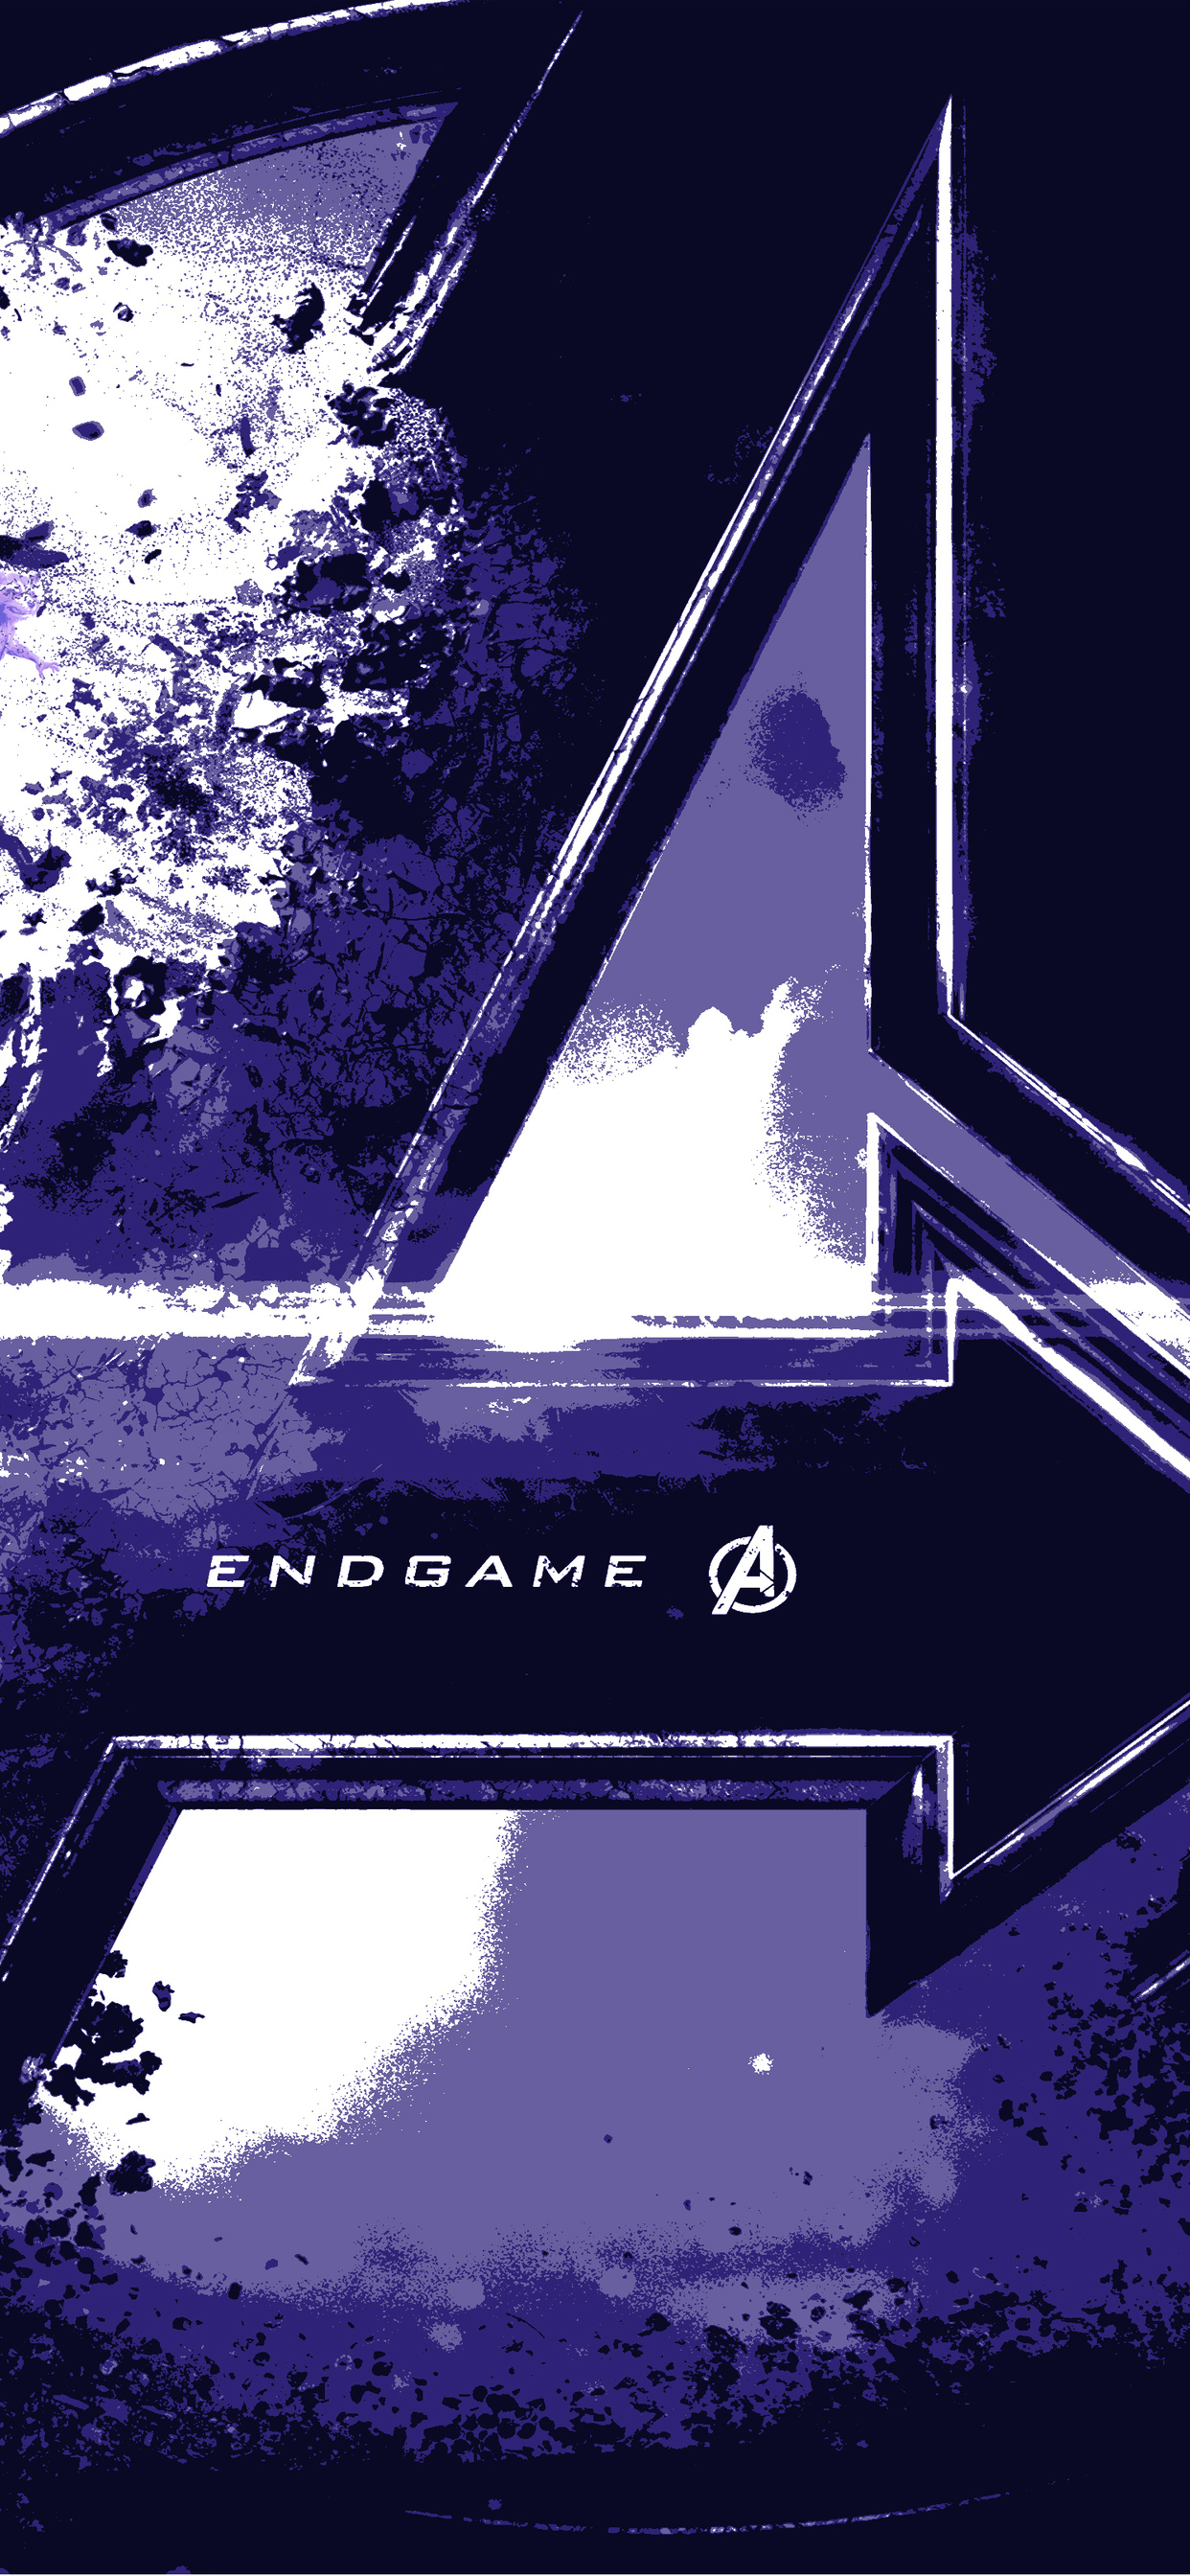 Avengers Endgame Wallpaper Hd Iphone